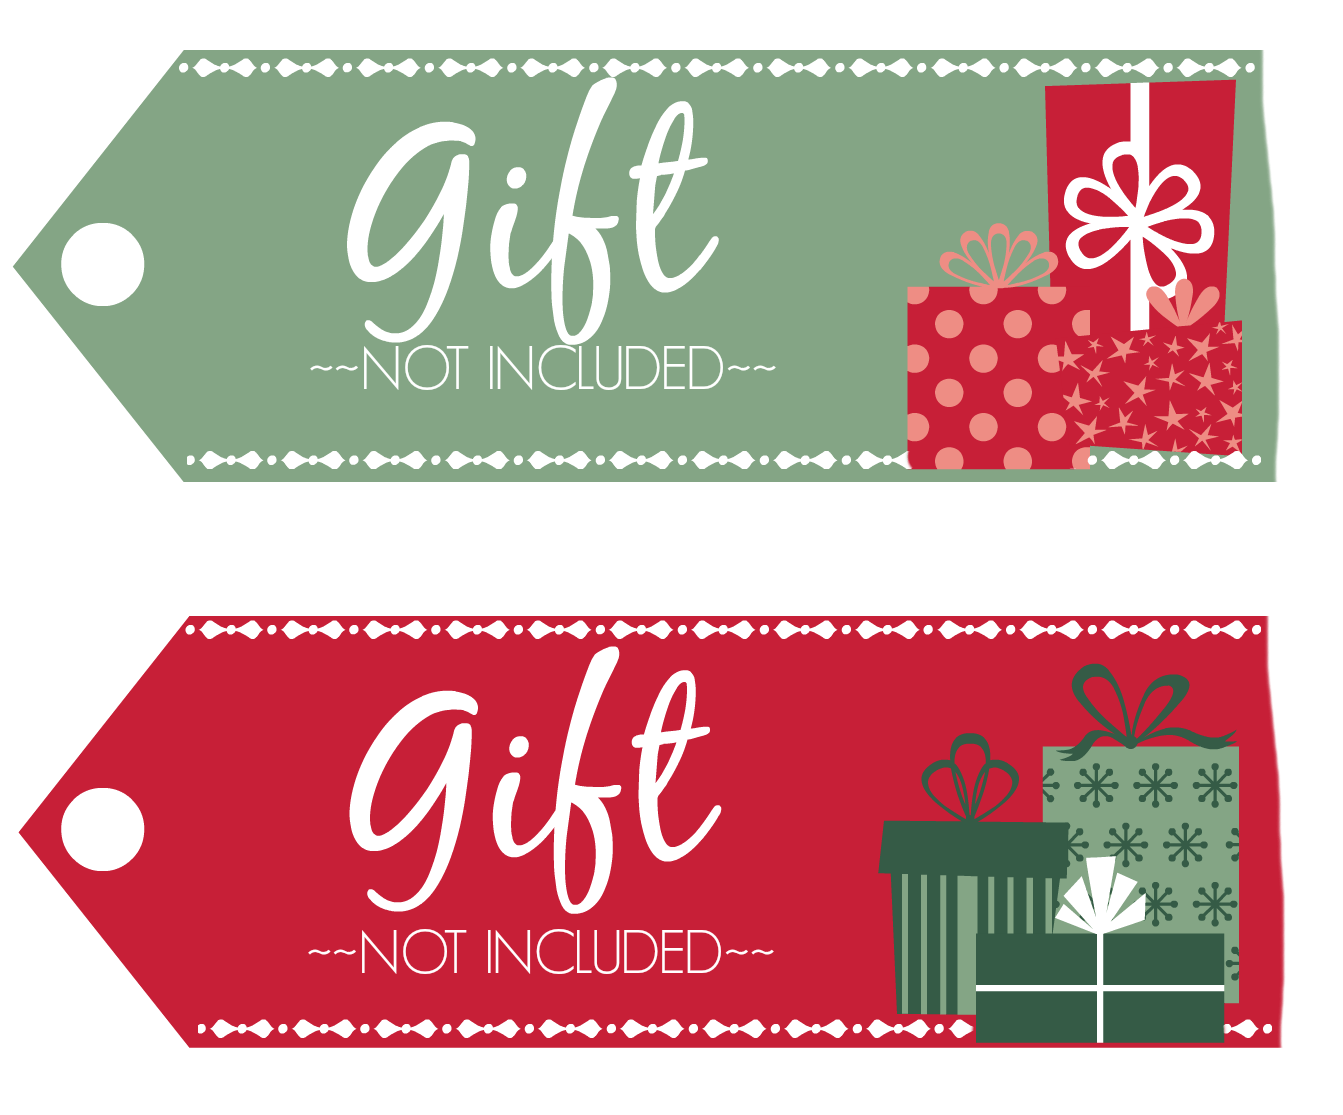 Fun & Practical White Elephant Gift Idea {plus a free printable}